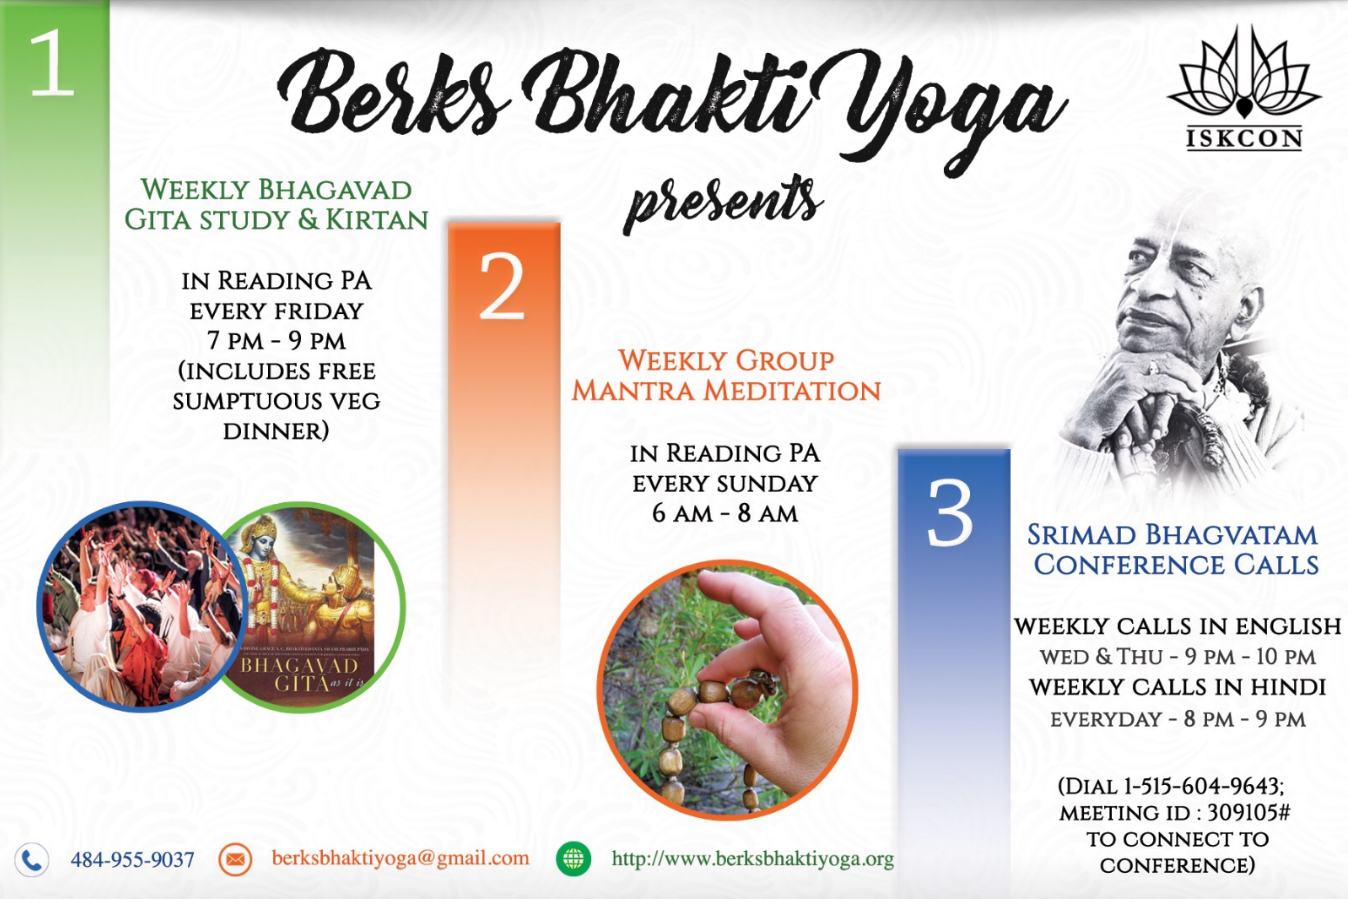 Weekly Spiritual Program (Kirtan, Bhagvat Gita Study, Mantra Meditation) in Reading @7pm @ Tripti & Devendra Agrawal | Sinking Spring | Pennsylvania | United States